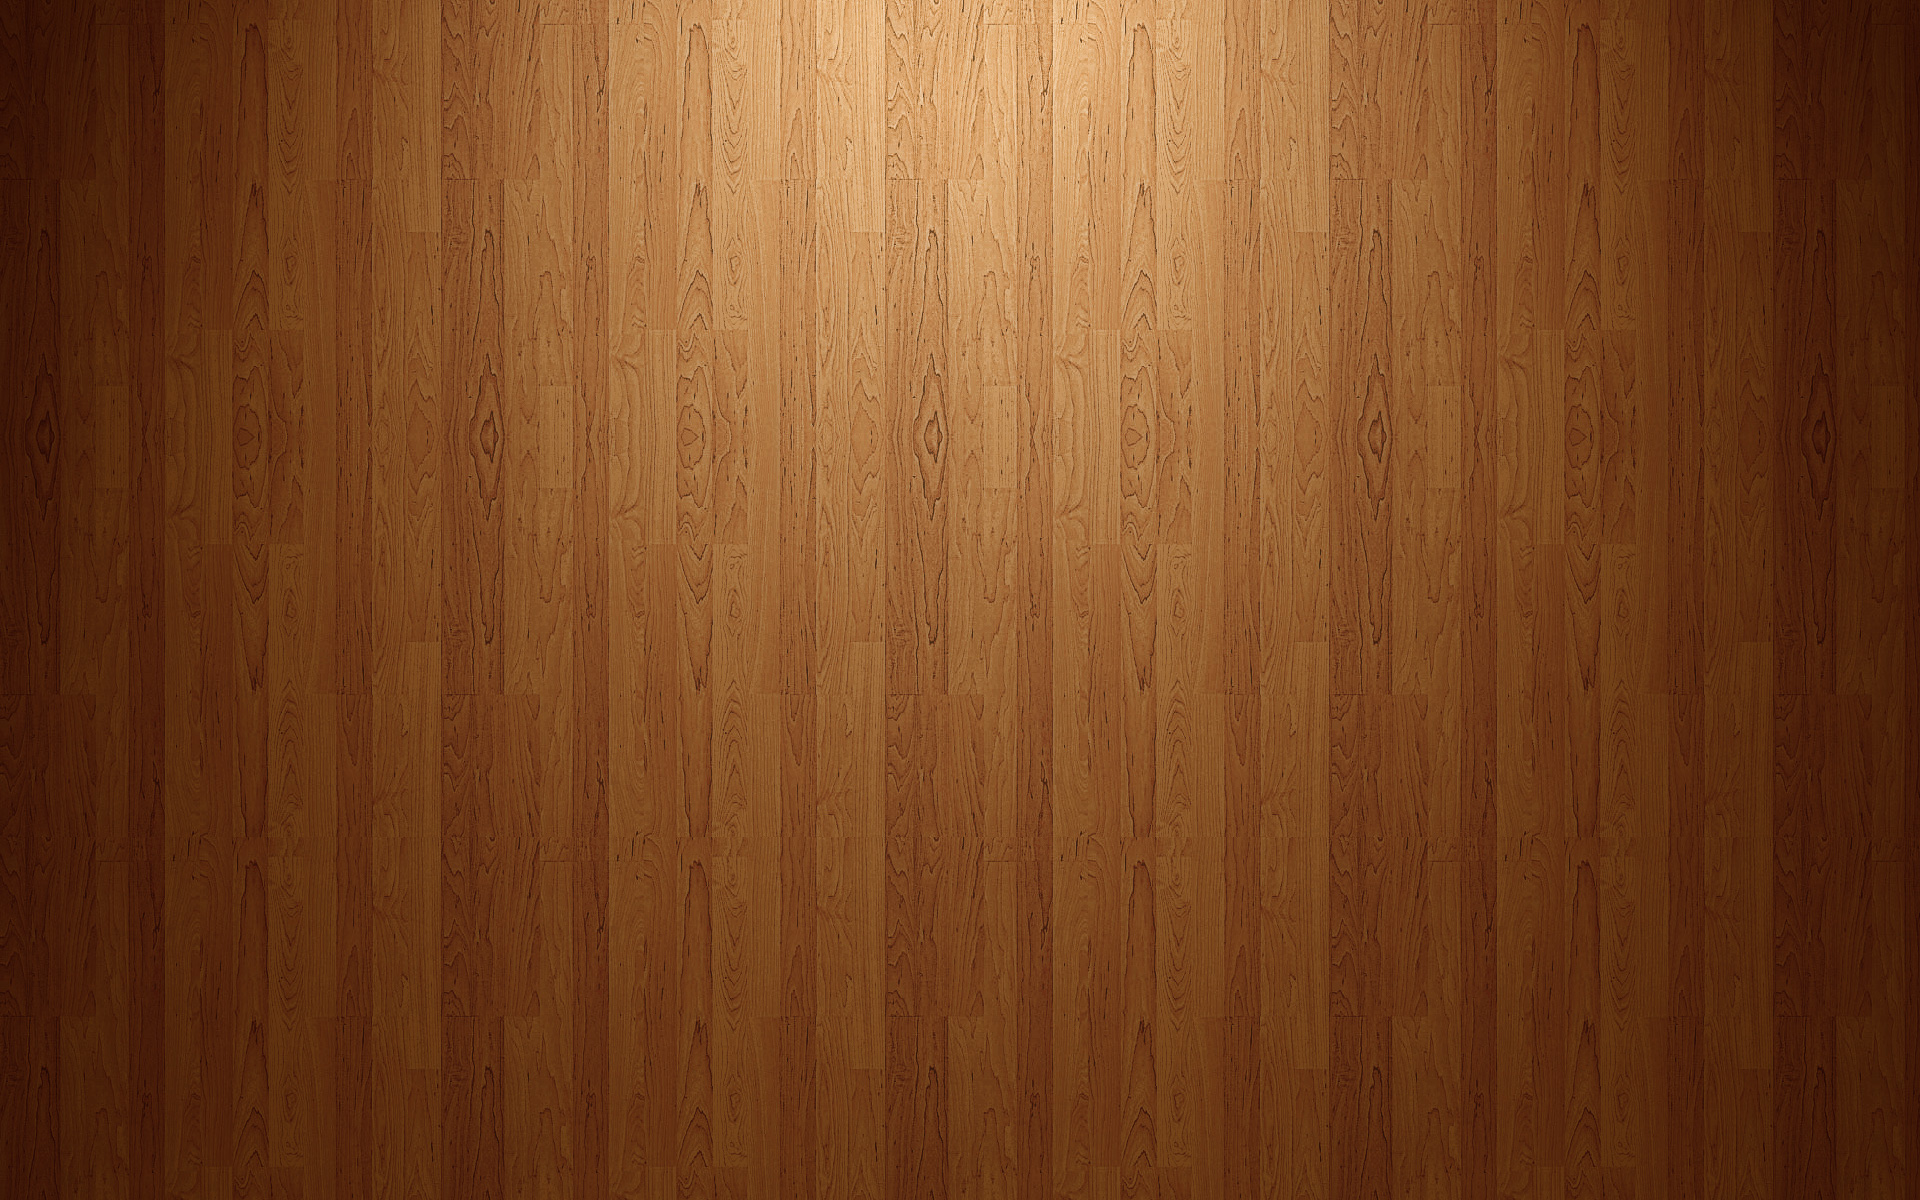 1920x1200 Wood Floor desktop wallpapers and stock photos